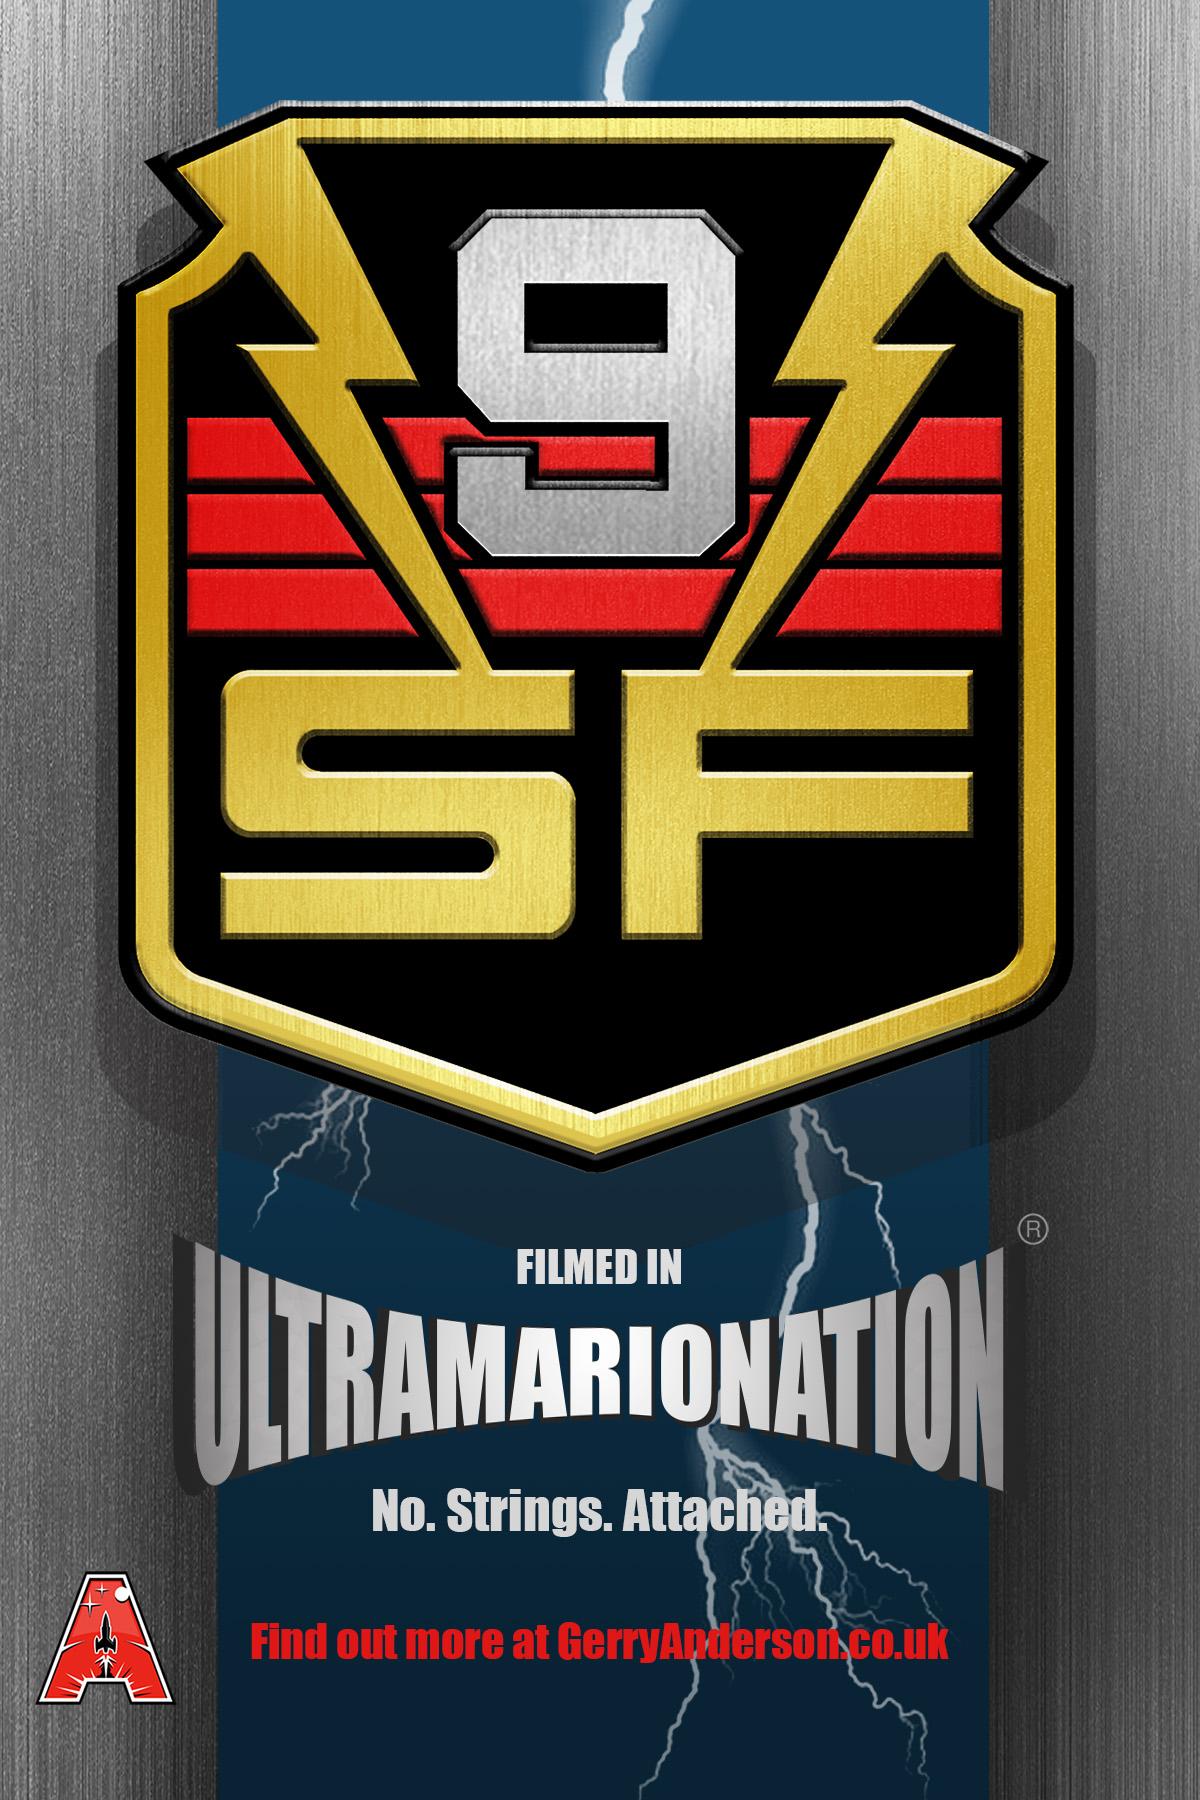 Ultramarionation Promotional Image